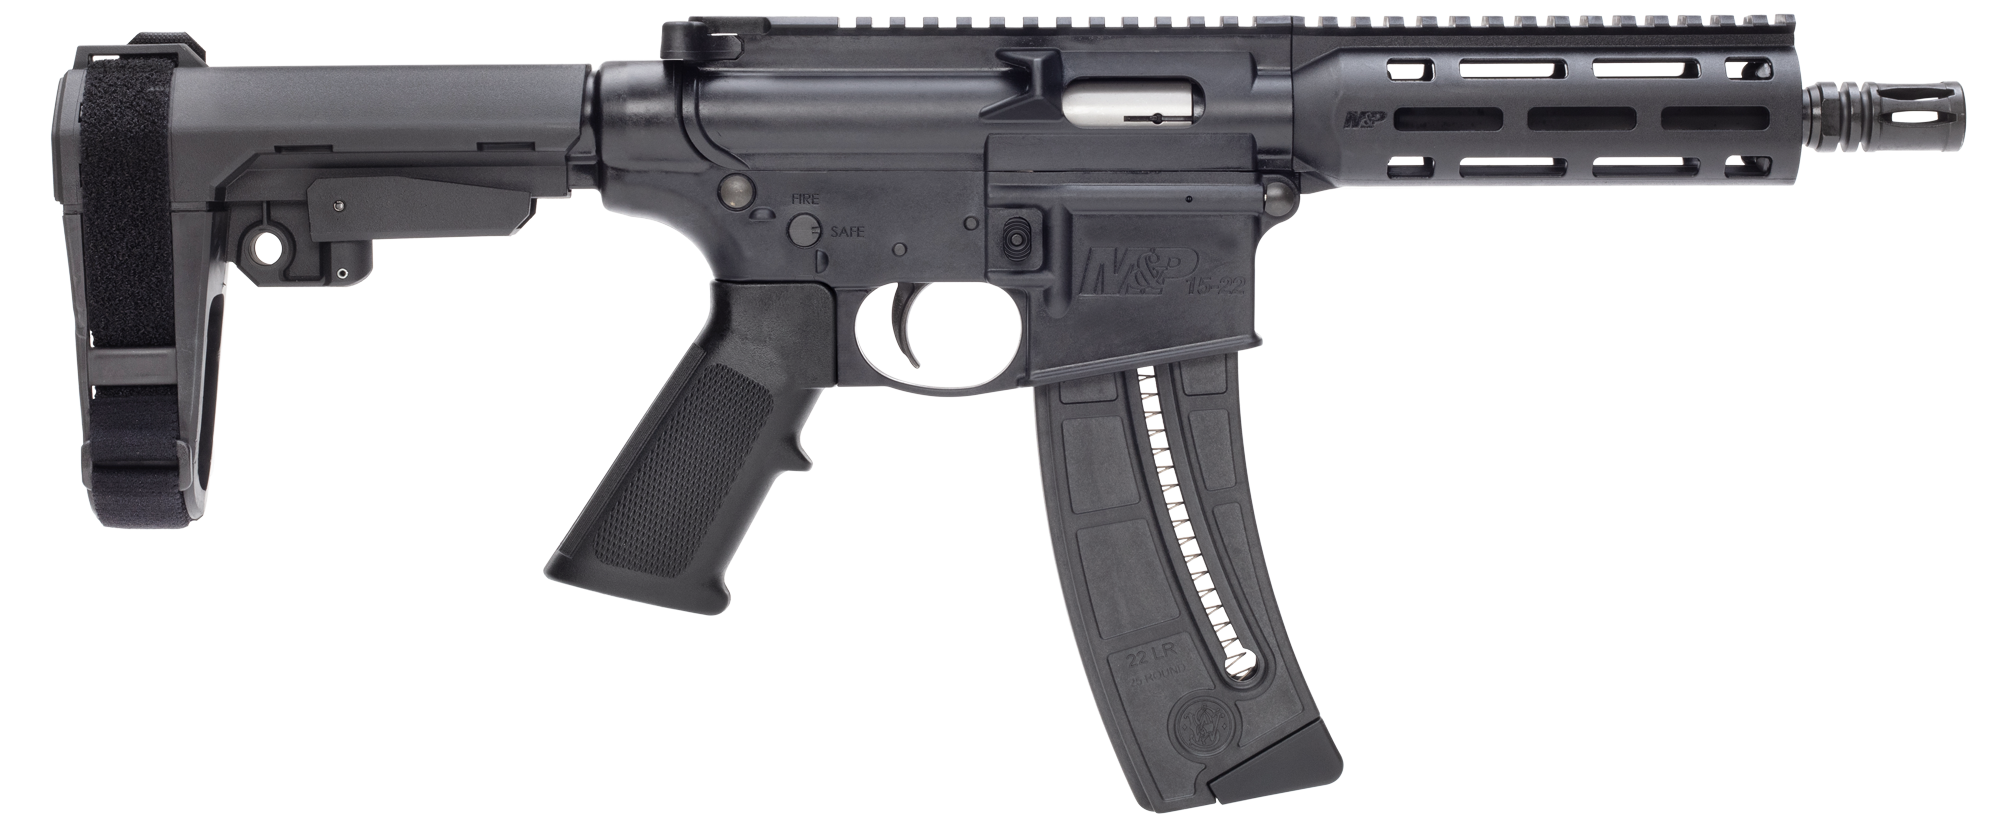 Smith & Wesson Introduces New and Improved M&P15-22 Pistol